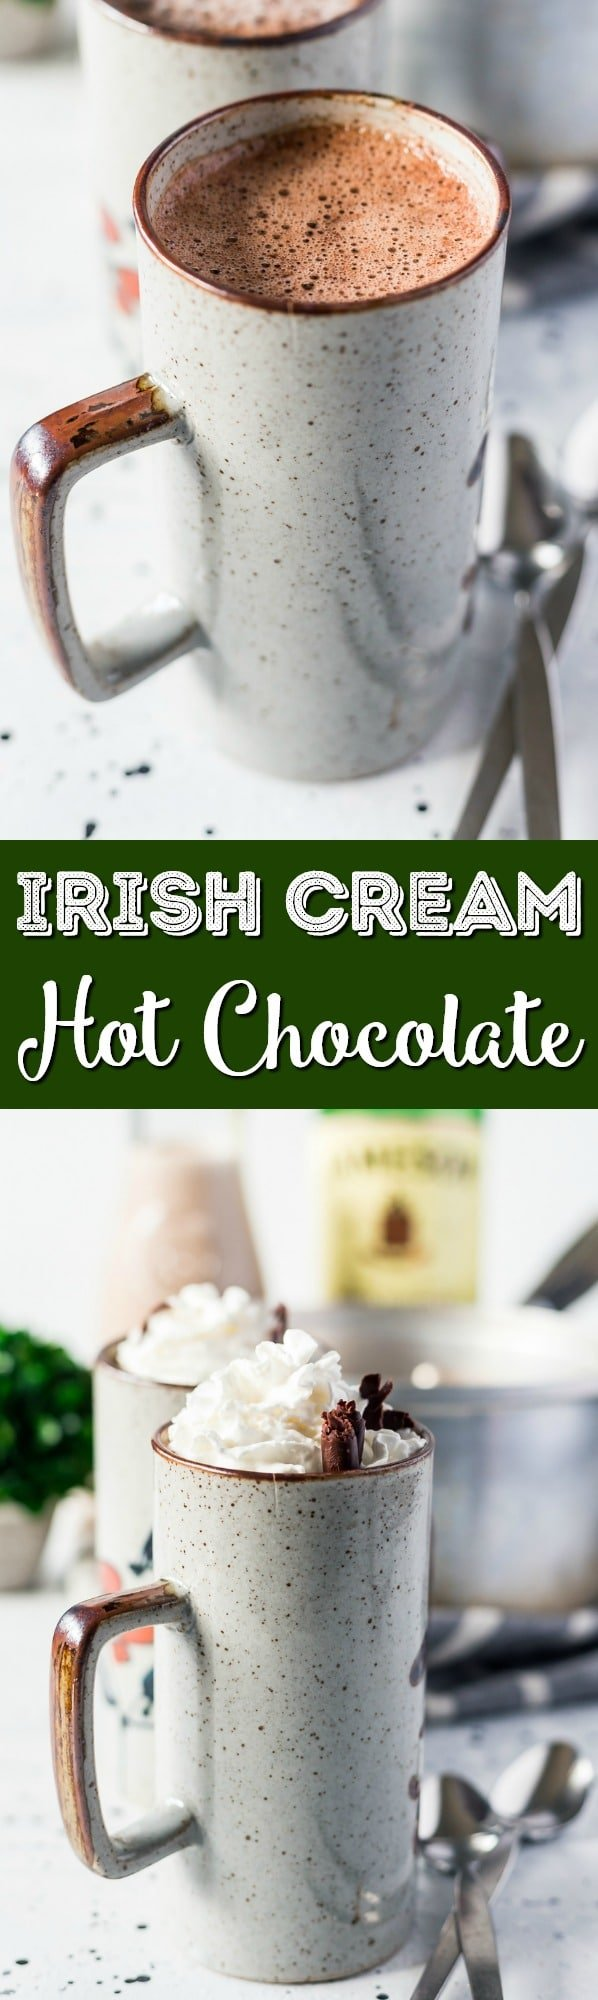 This Irish Cream Hot Chocolate is loaded with creamy and delicious flavor and the perfect hot cocktail to cozy up with on chilly nights! via @sugarandsoulco